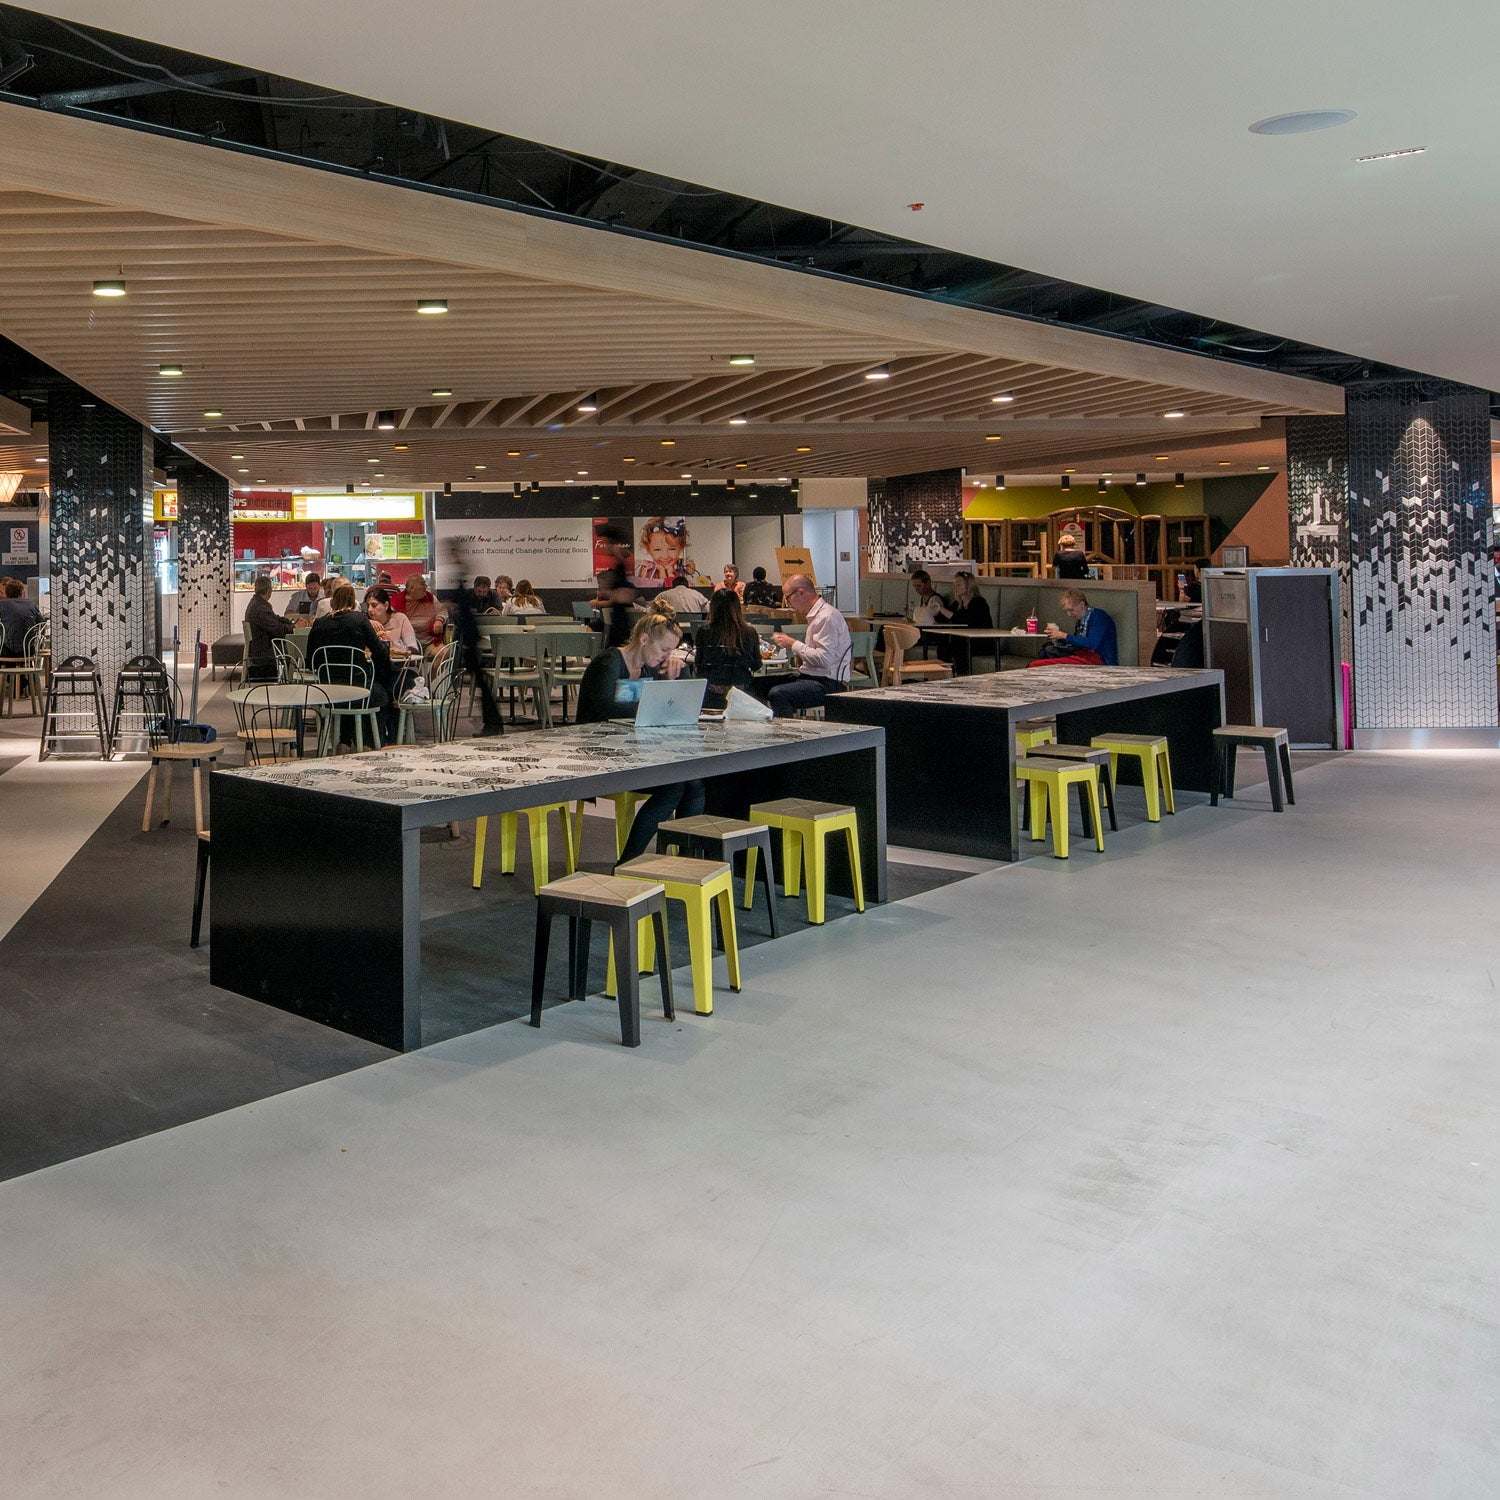 Timber Tuck Stool | Leffler Simes | MarketPlace Leichhardt Food Court